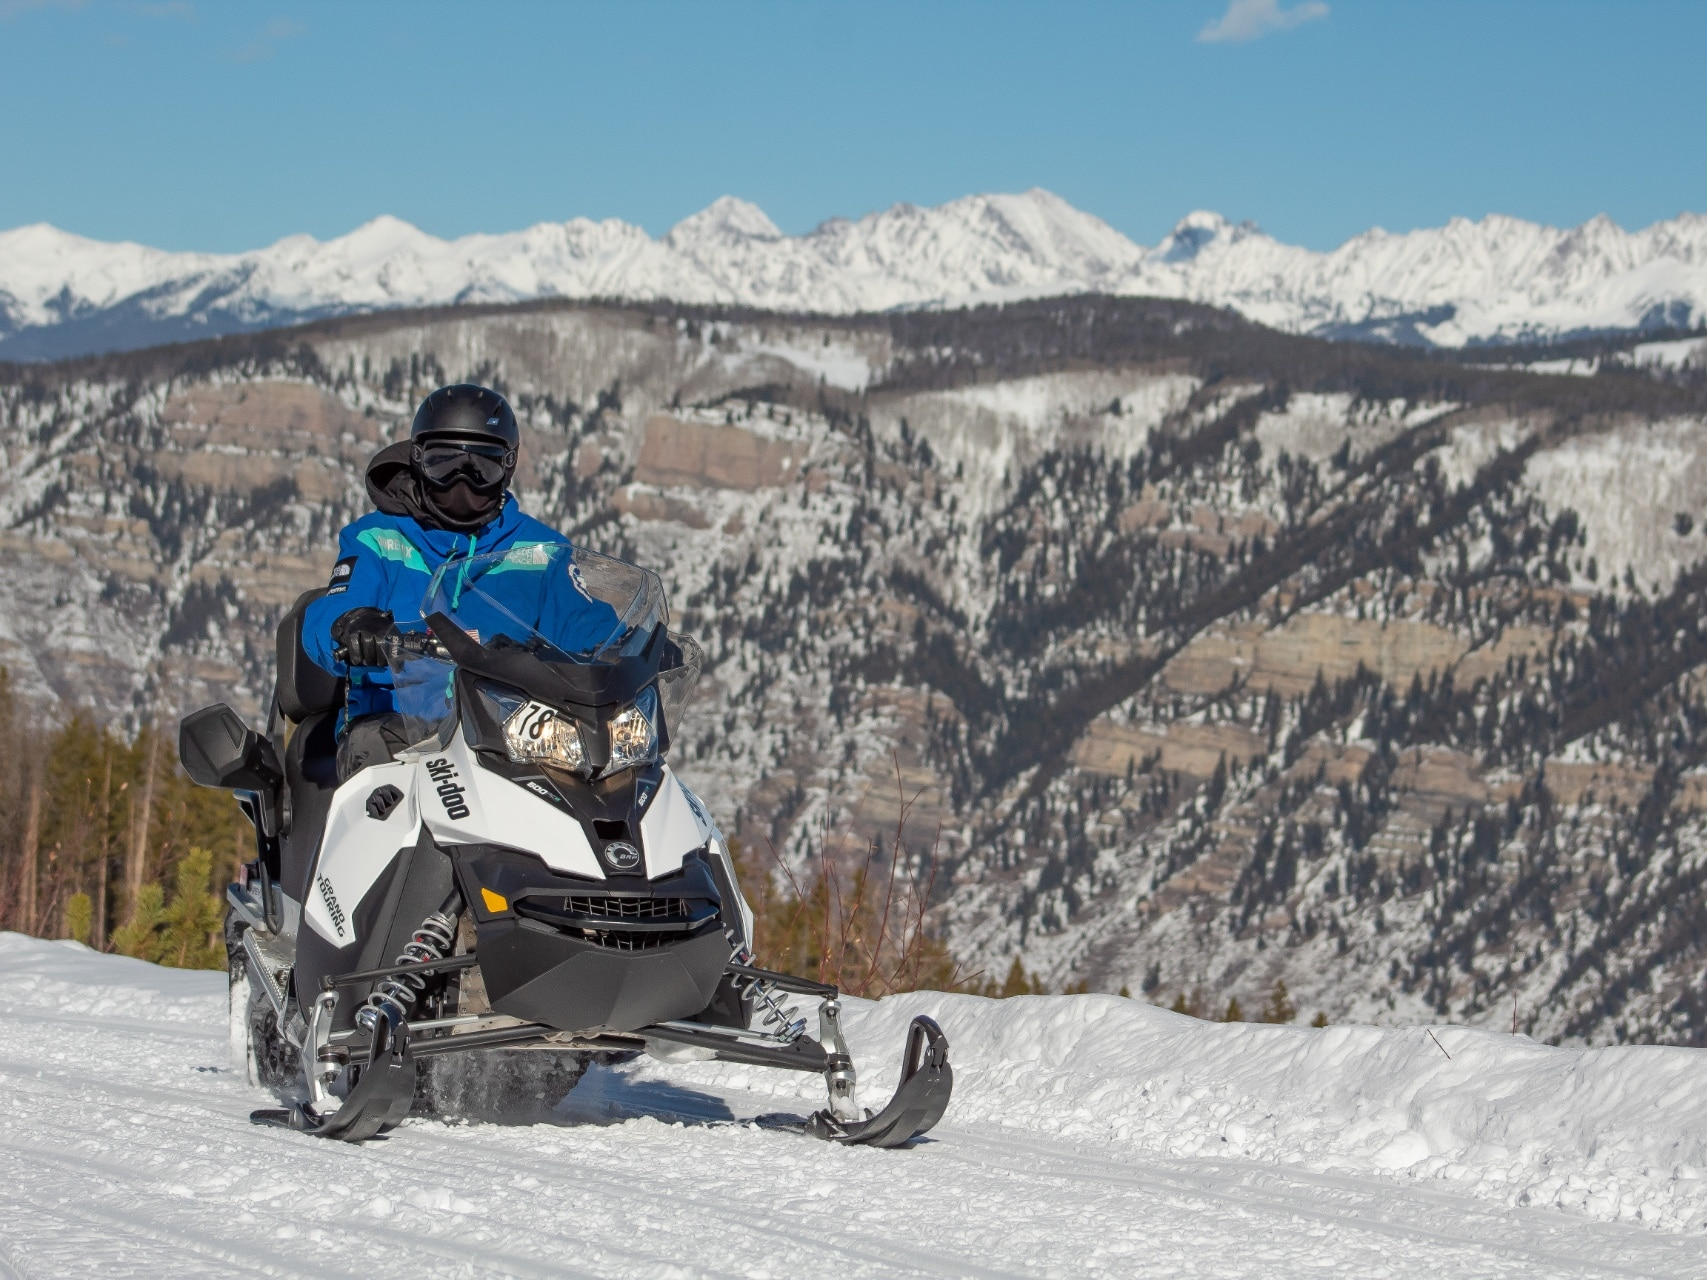 Riding 2 up on Ski-Doo in the mountains